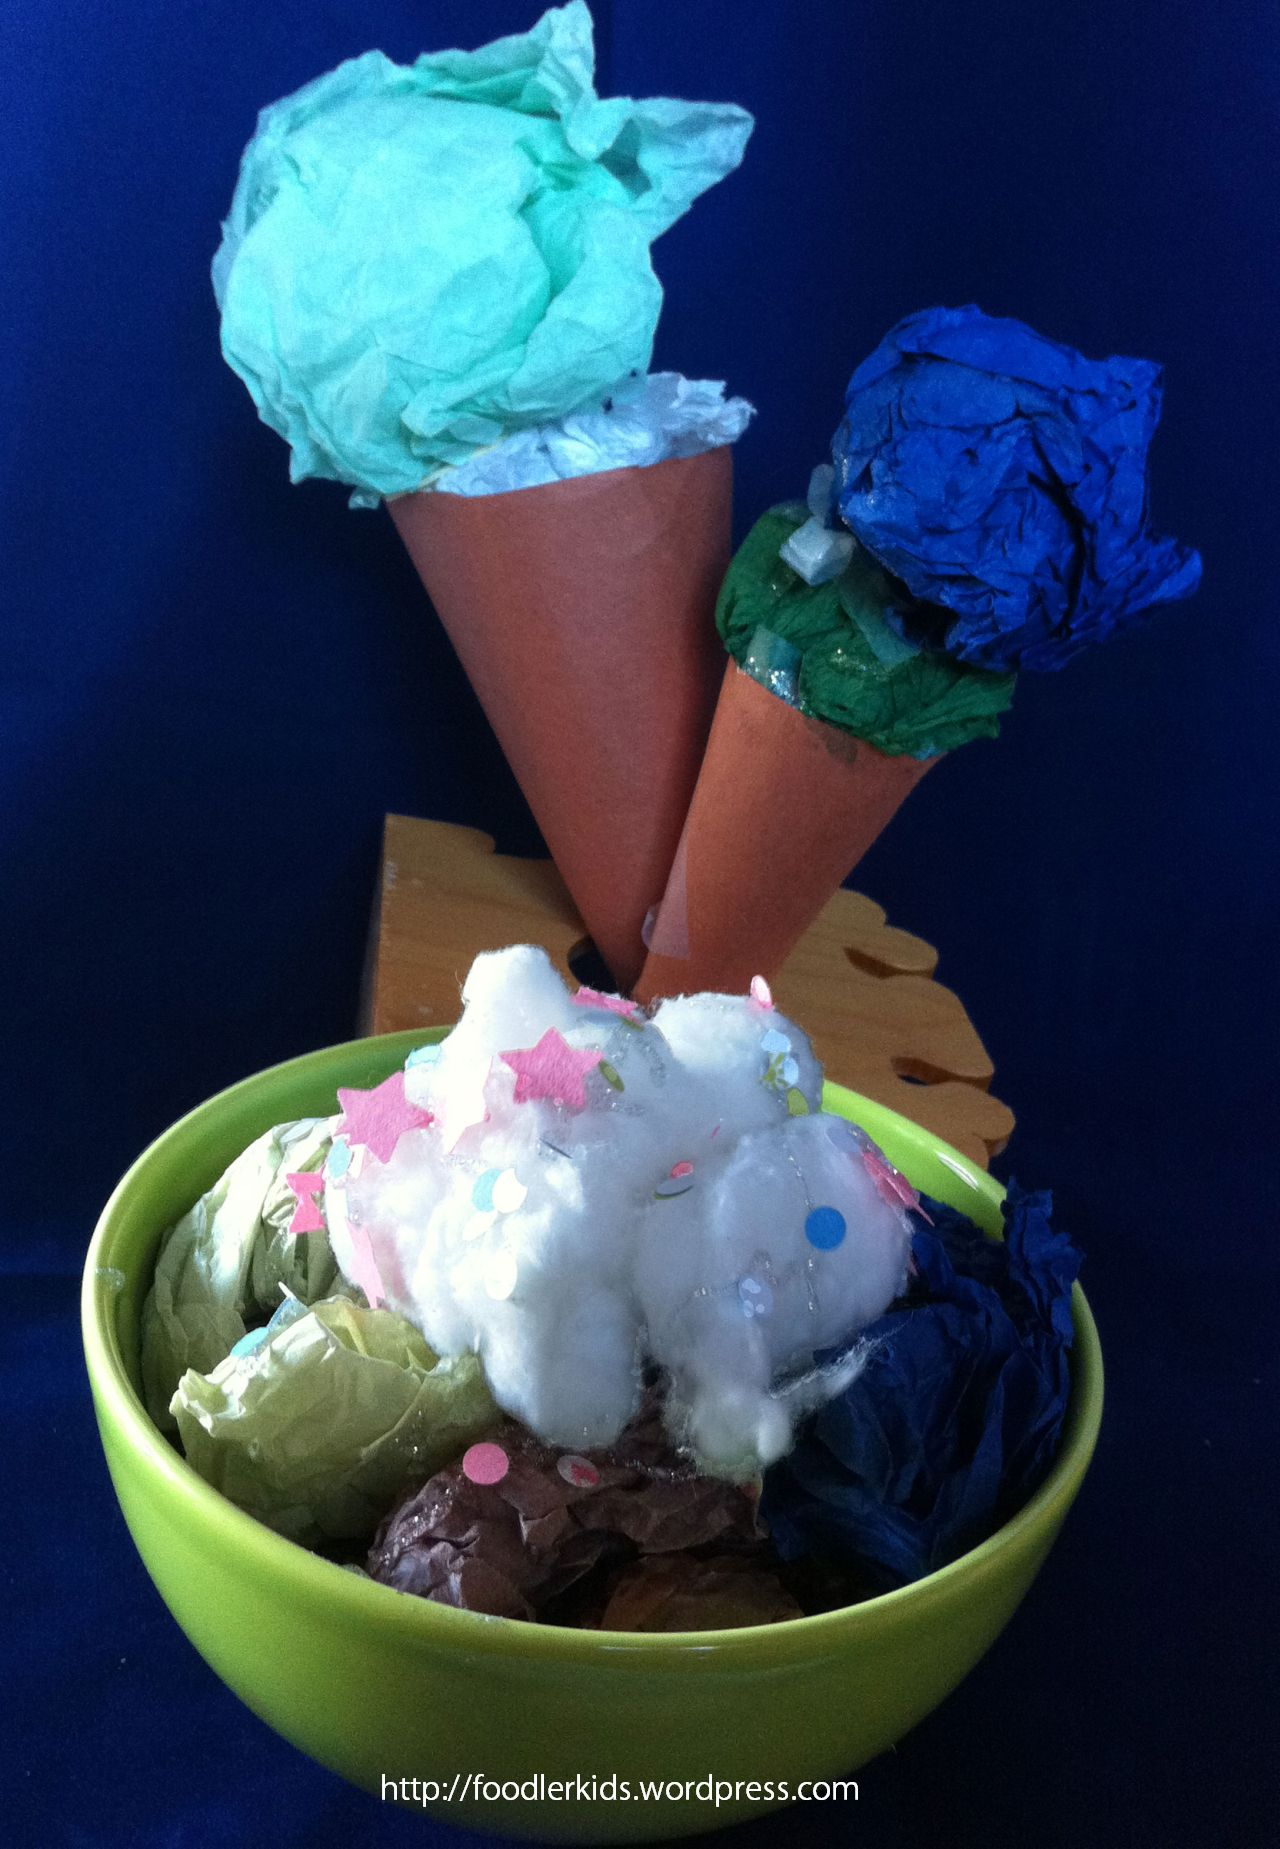 Last Week It Was My Turn To Bring Craft Toddler Playgroup I Had Seen A Paper Ice Cream Cone In The Summer Themed Window Display At Our Local Library And